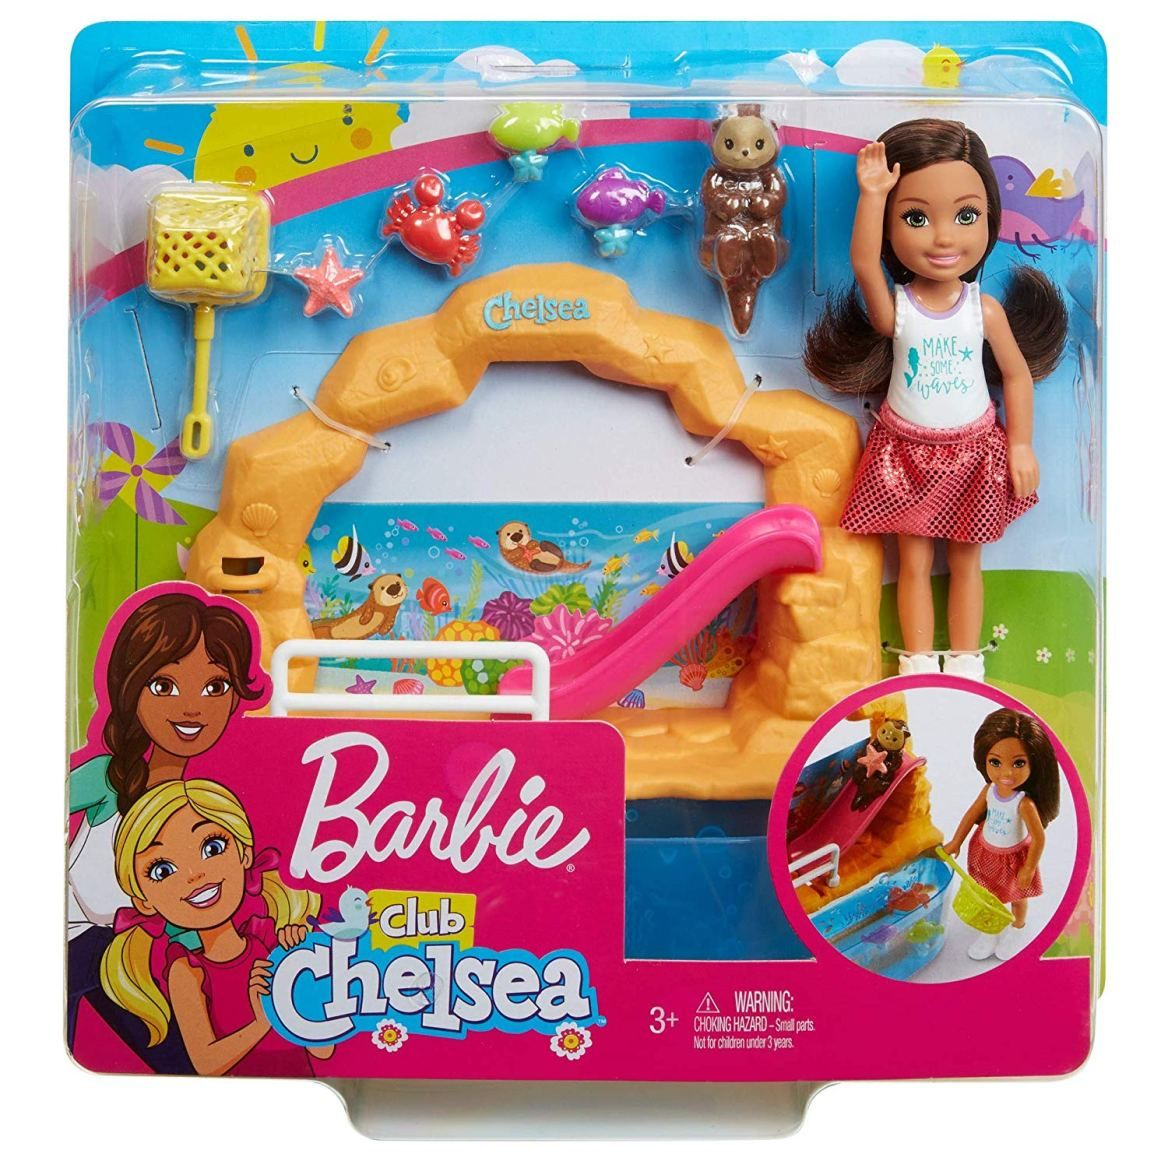 2020 News about the Barbie Dolls! in 2020 Barbie, Barbie